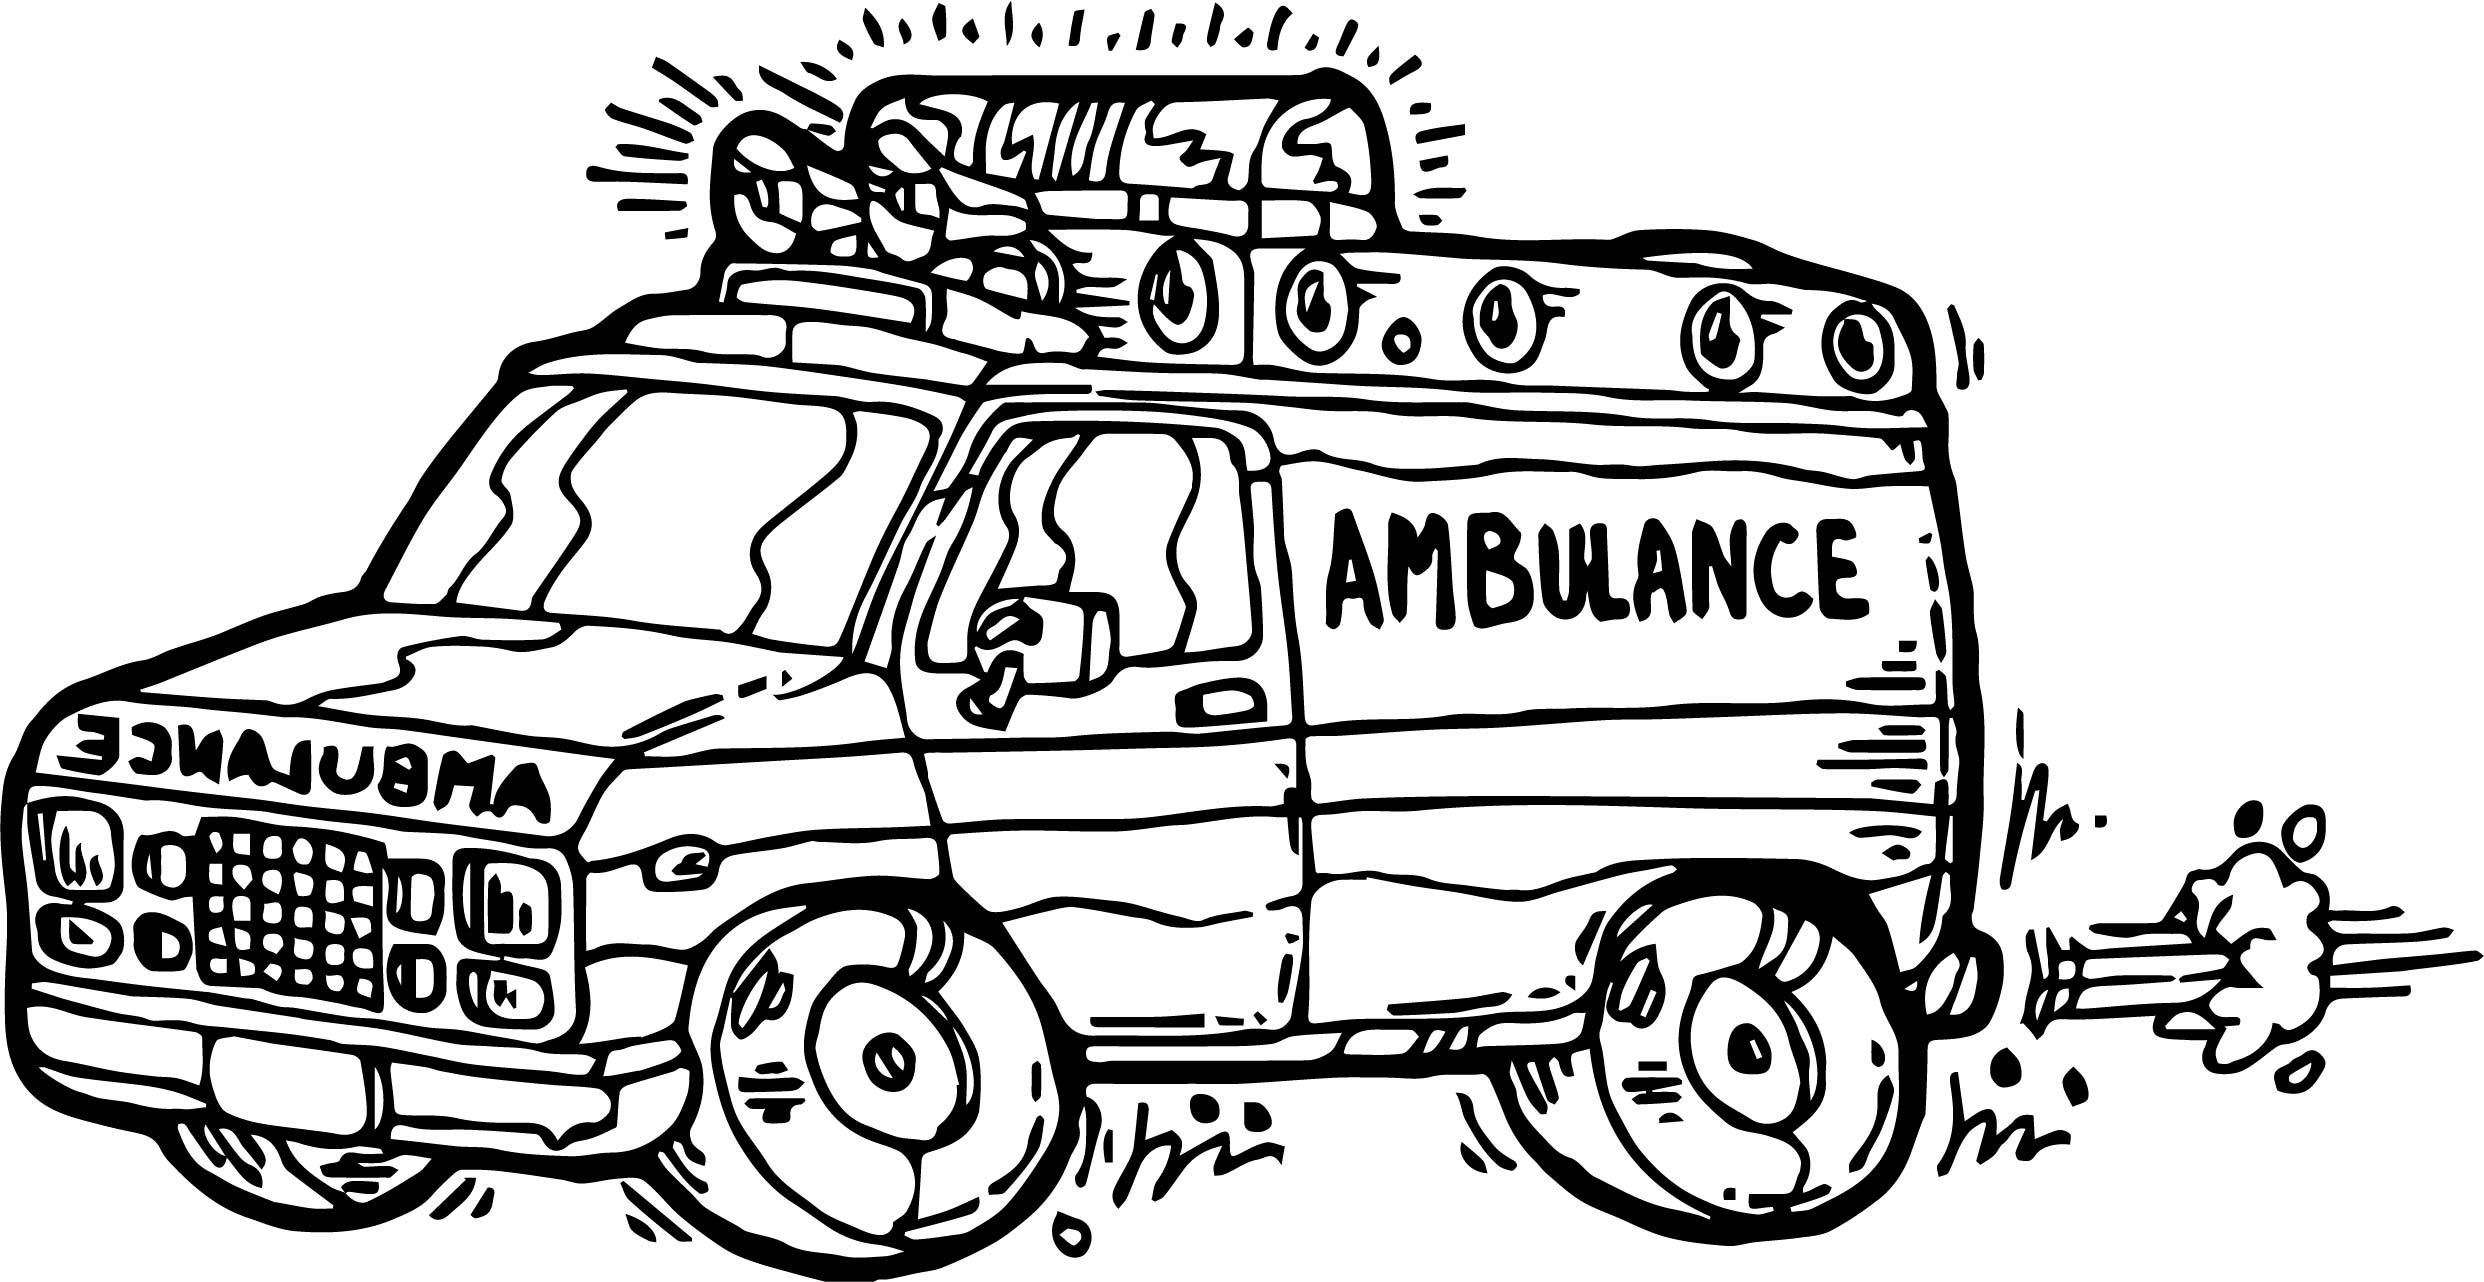 Awesome Cartoon Ambulance Coloring Page Monster Truck Coloring Pages Bear Coloring Pages Disney Coloring Pages